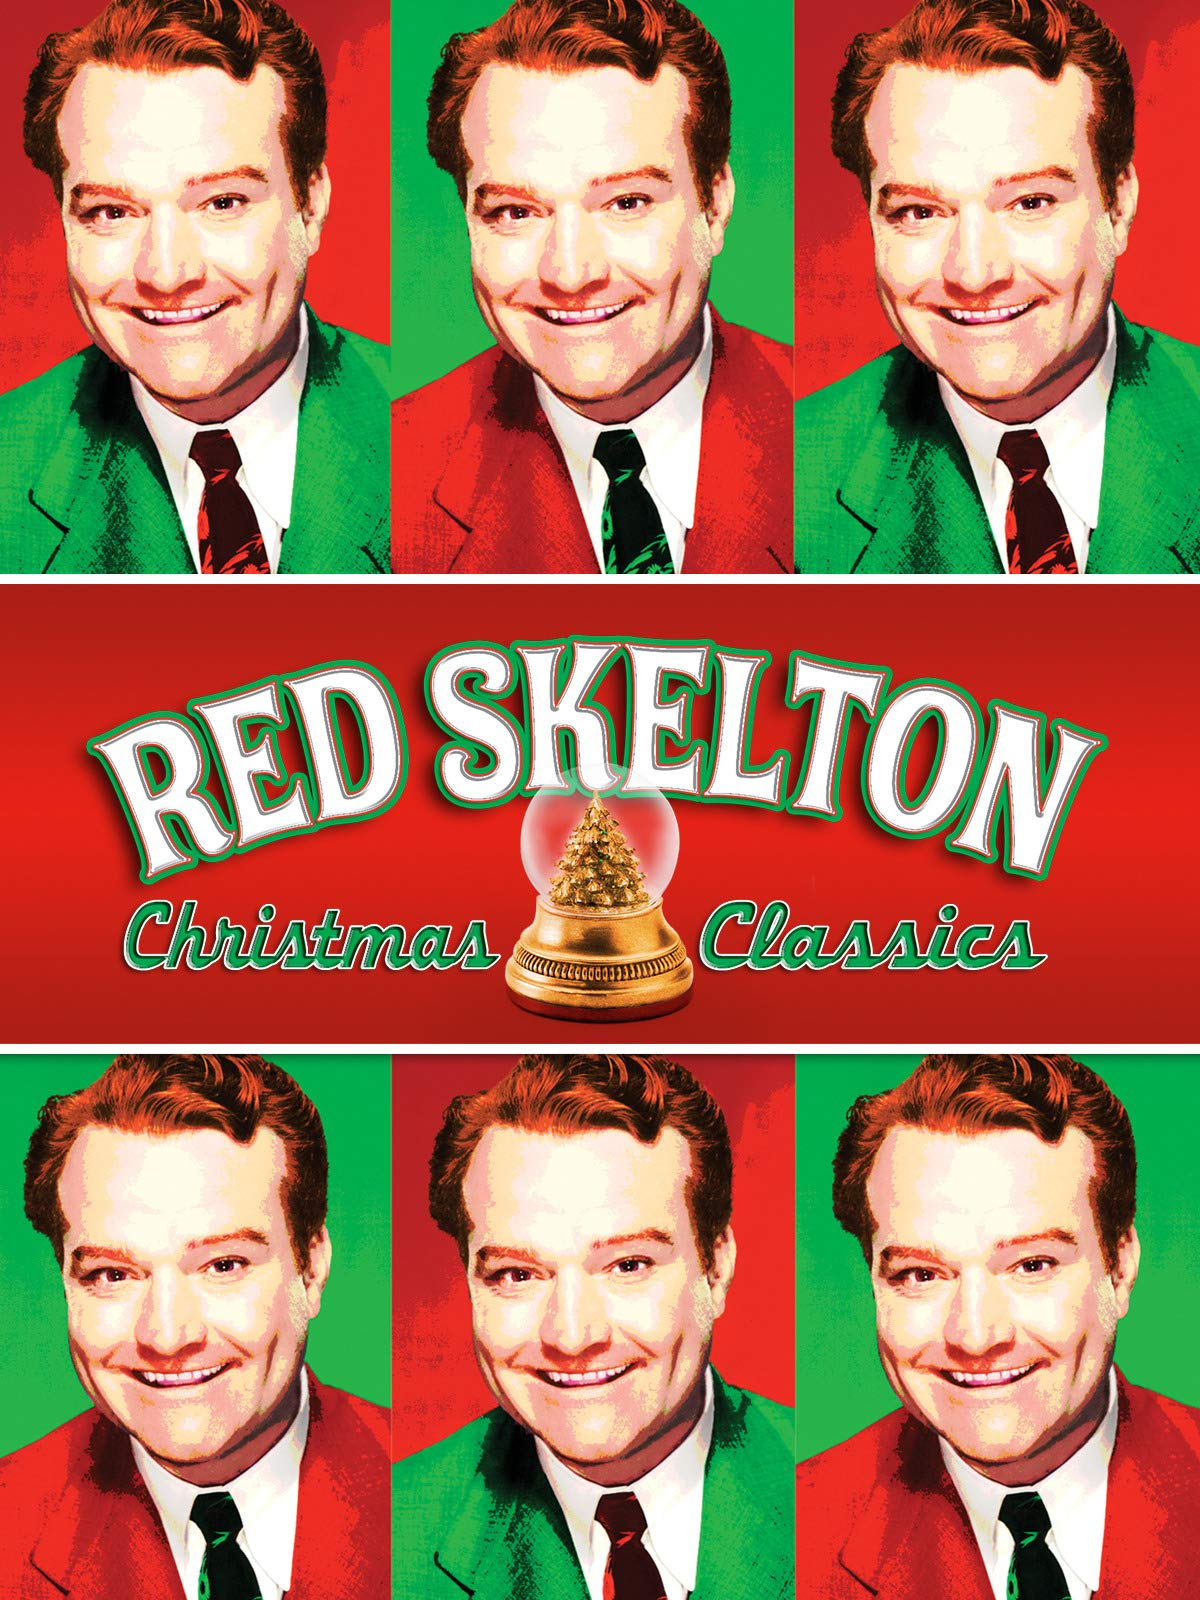 Red Skelton Christmas (in Color) on Amazon Prime Video UK